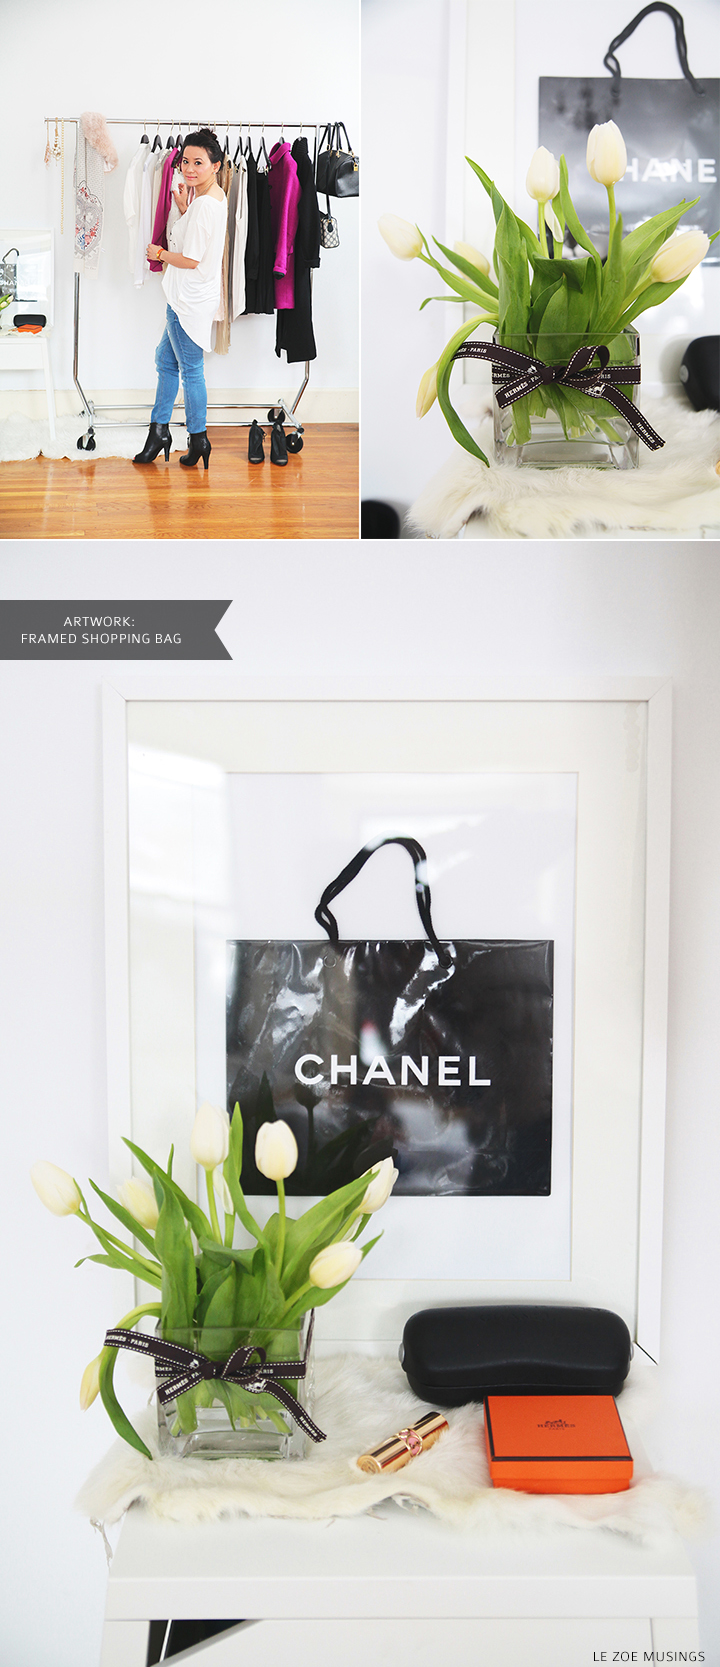 The Mobile Closet 8 by Le Zoe Musings